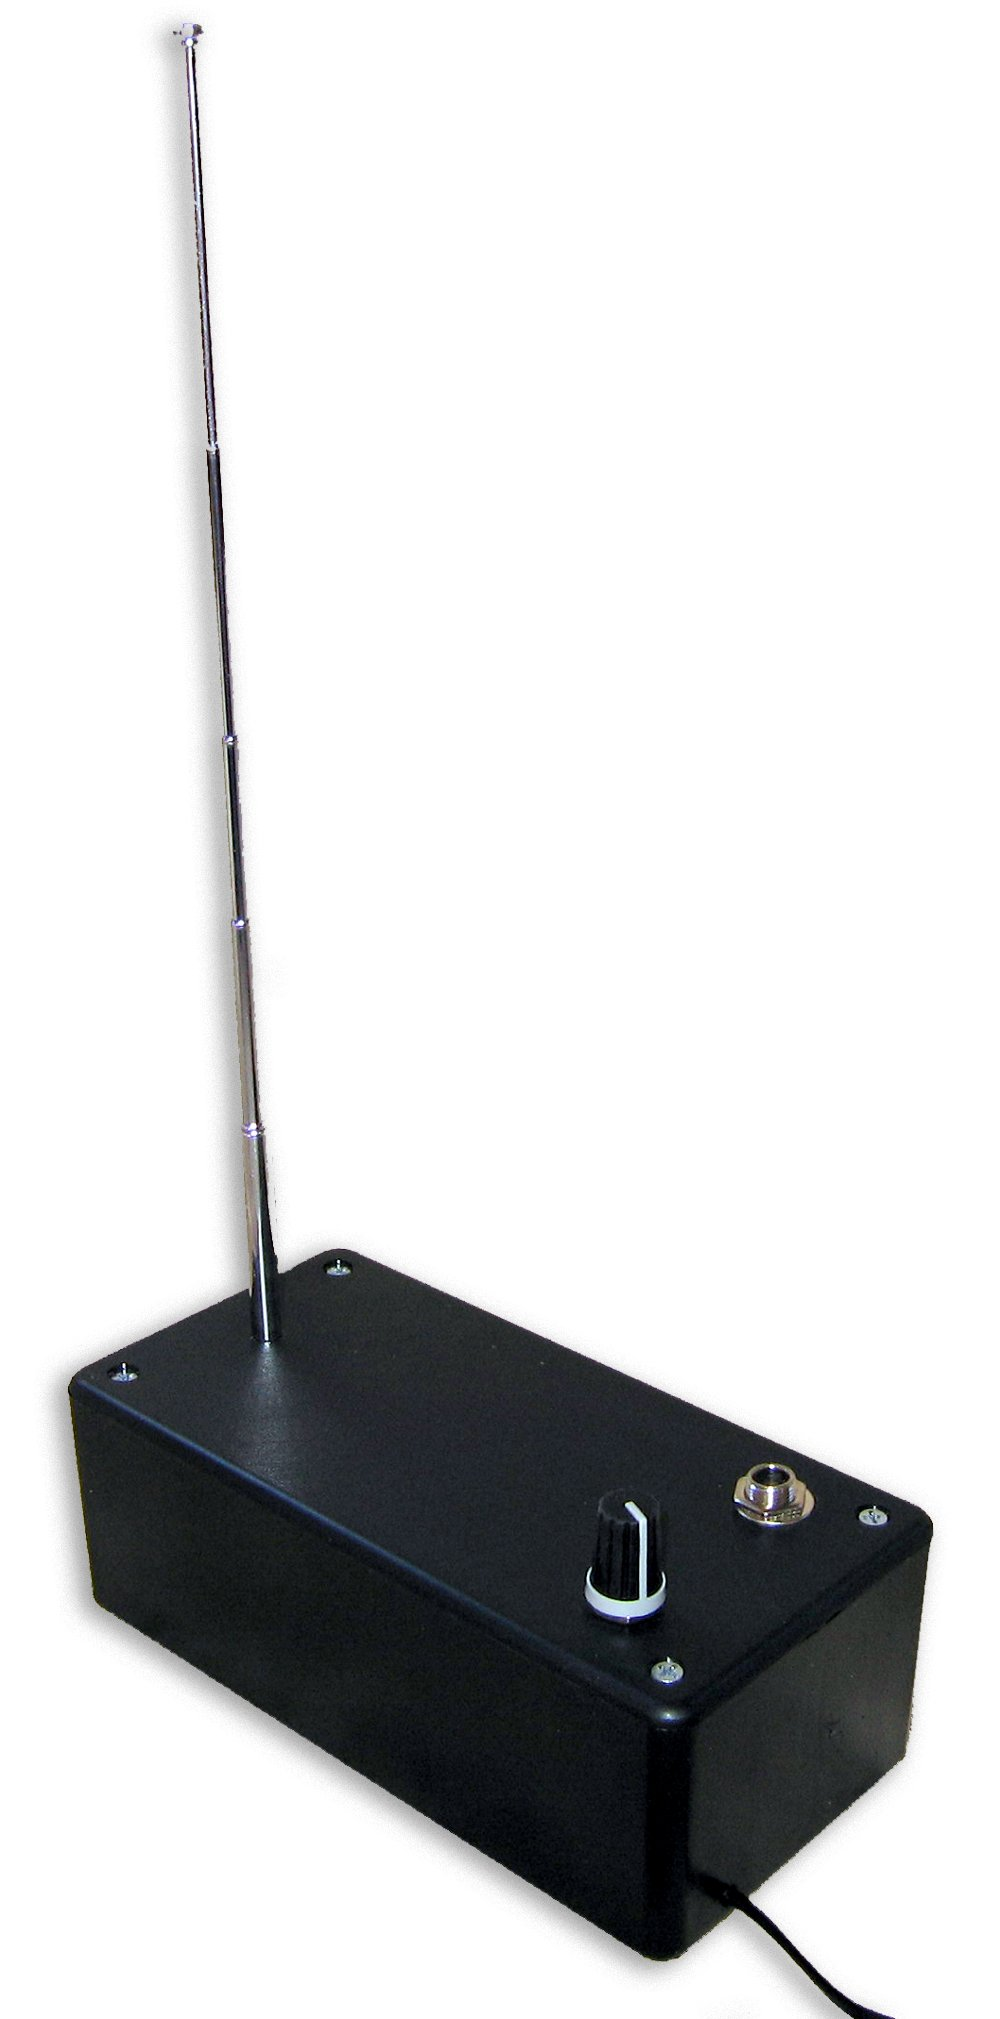 Burns Theremins Great Sounding Theremin at a Great Price by Burns Theremins